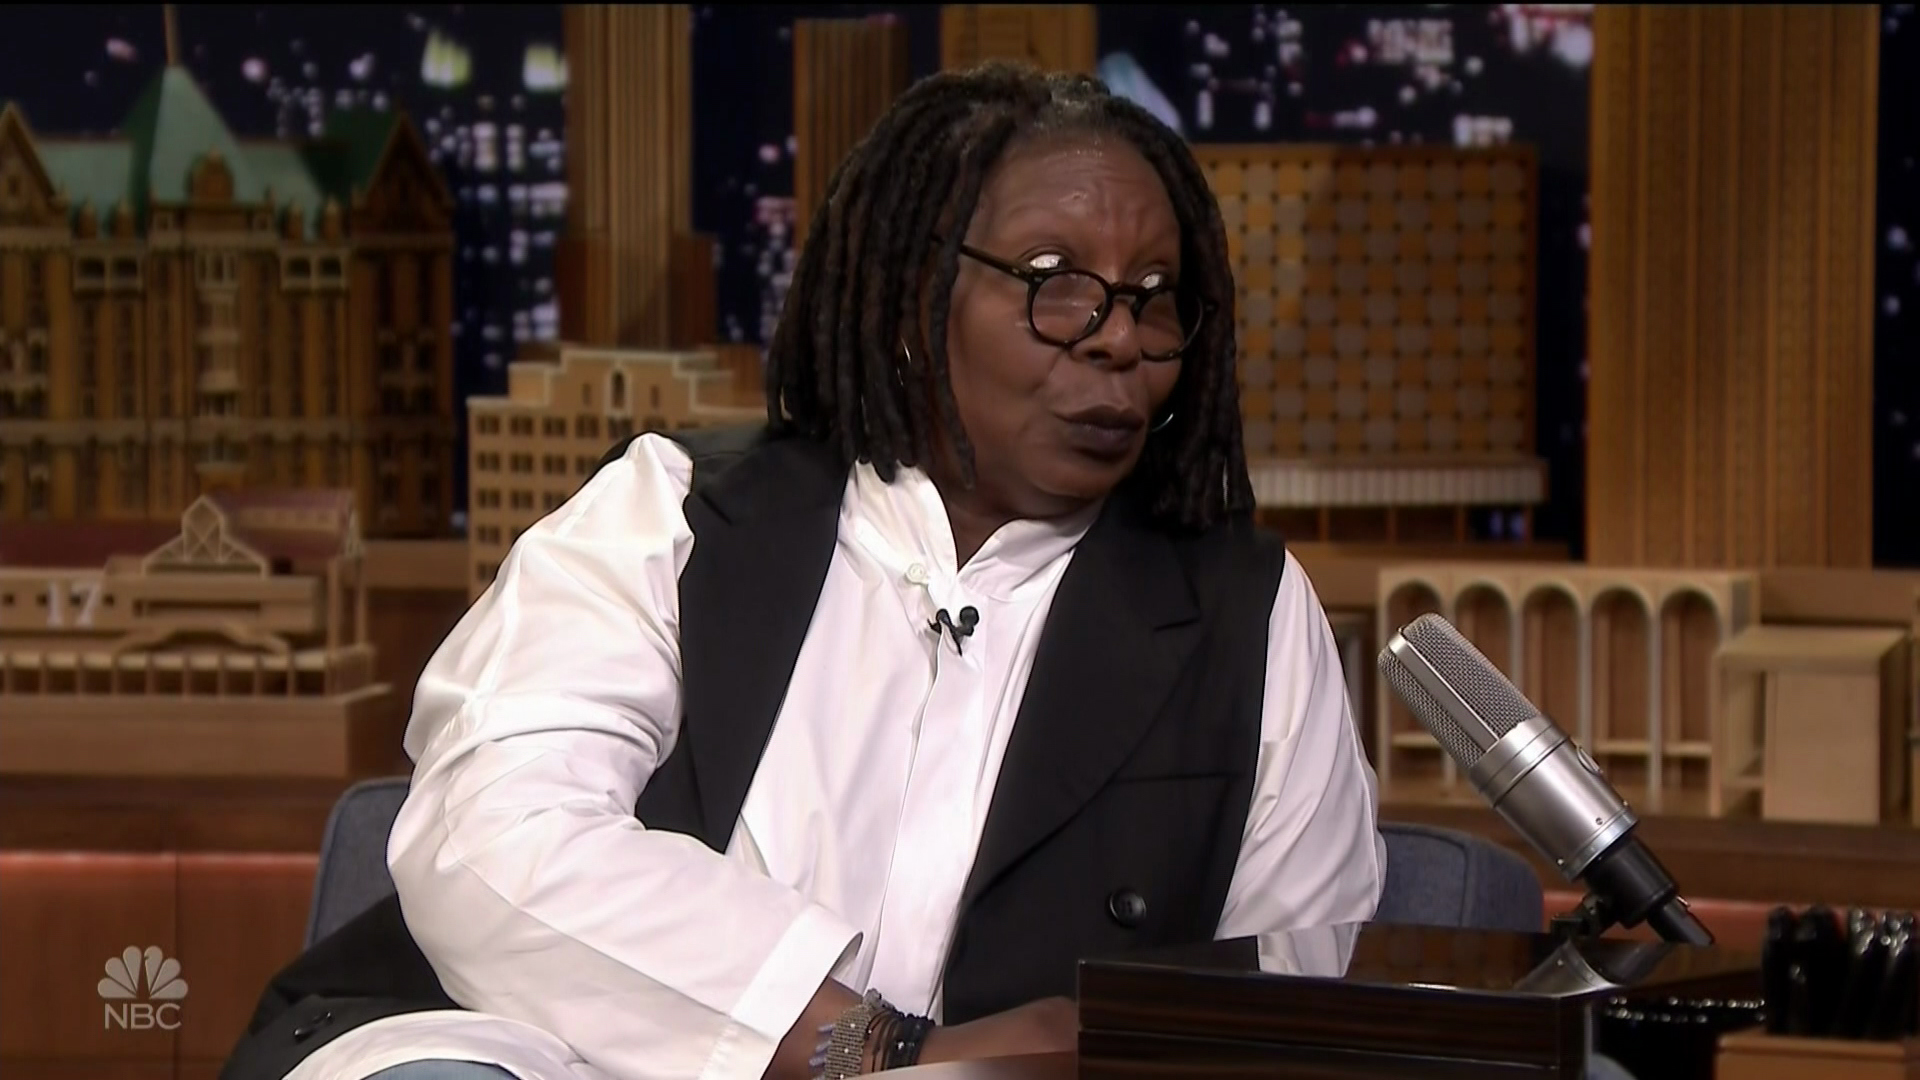 Whoopi Goldberg during an appearance on NBC's 'The Tonight Show Starring Jimmy Fallon.'